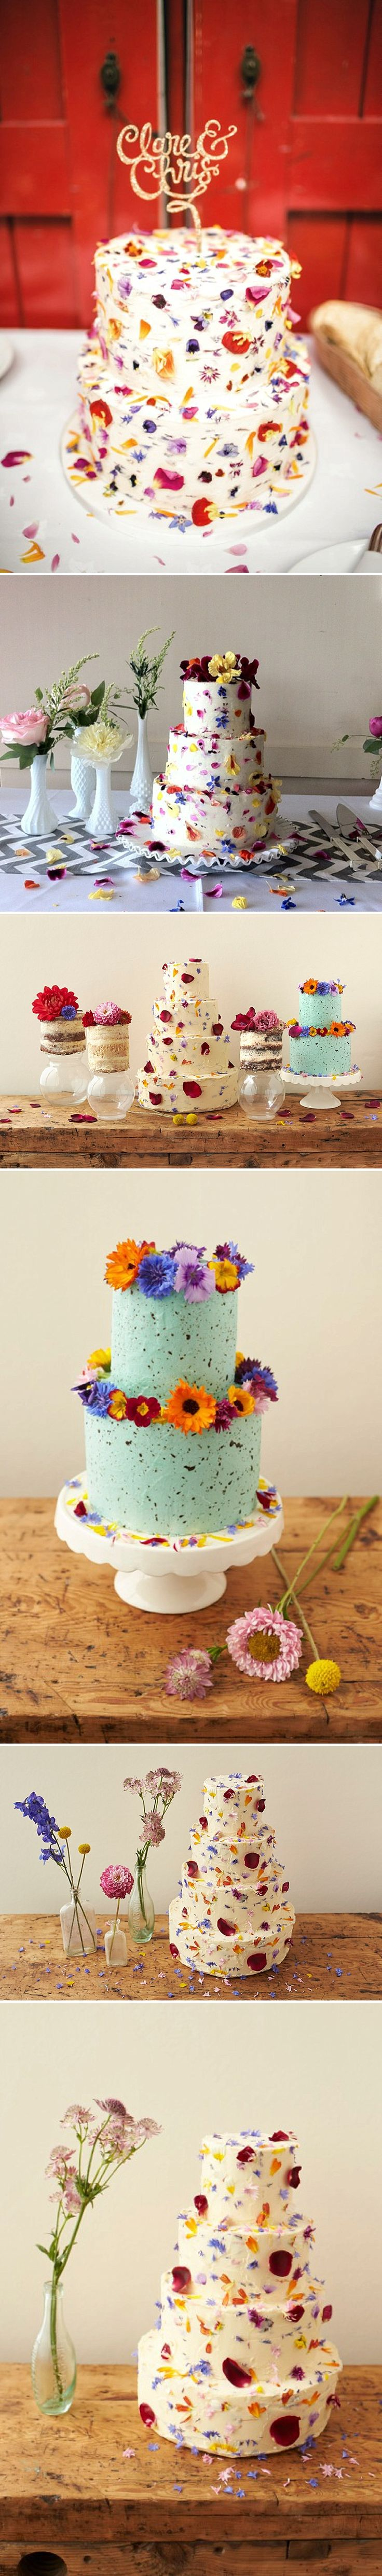 Wedding cakes decorated with edible petals | colourful wedding cakes | fun wedding cakes | Quirky Wedding Cakes | Cake by http://beesbakery.co.uk/#sthash.BPsDaL20.dpbs | http://www.rockmywedding.co.uk/decorating-cakes-with-edible-petals/